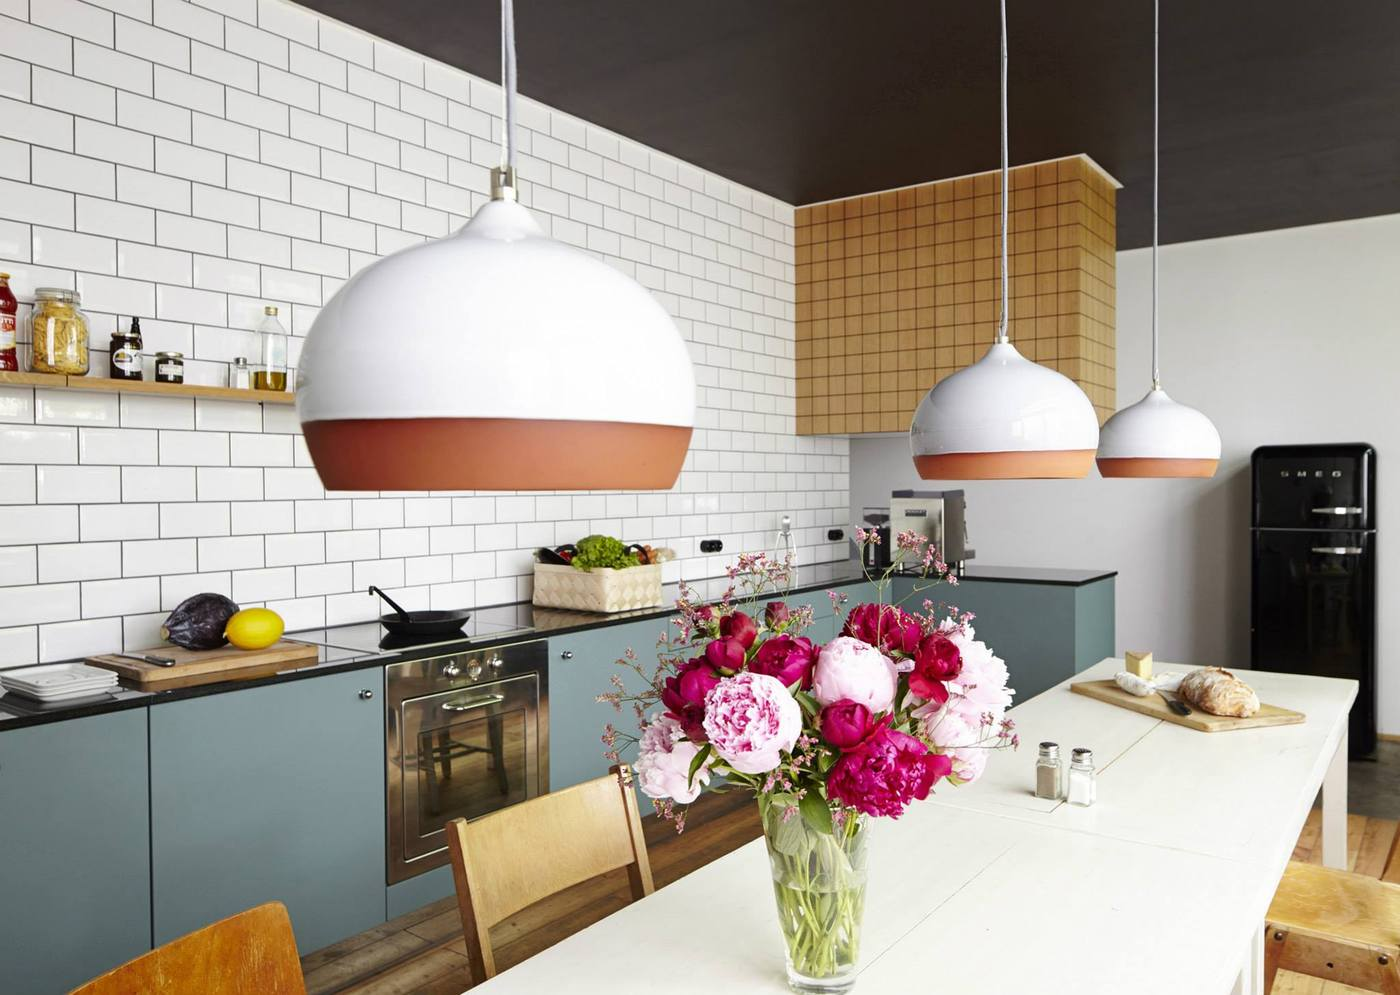 White subway tile kitchen designs are incredibly universal urban view in gallery compare these two amazingly similar but different kitchens 2 thumb 630xauto 53803 white subway tile kitchen dailygadgetfo Choice Image